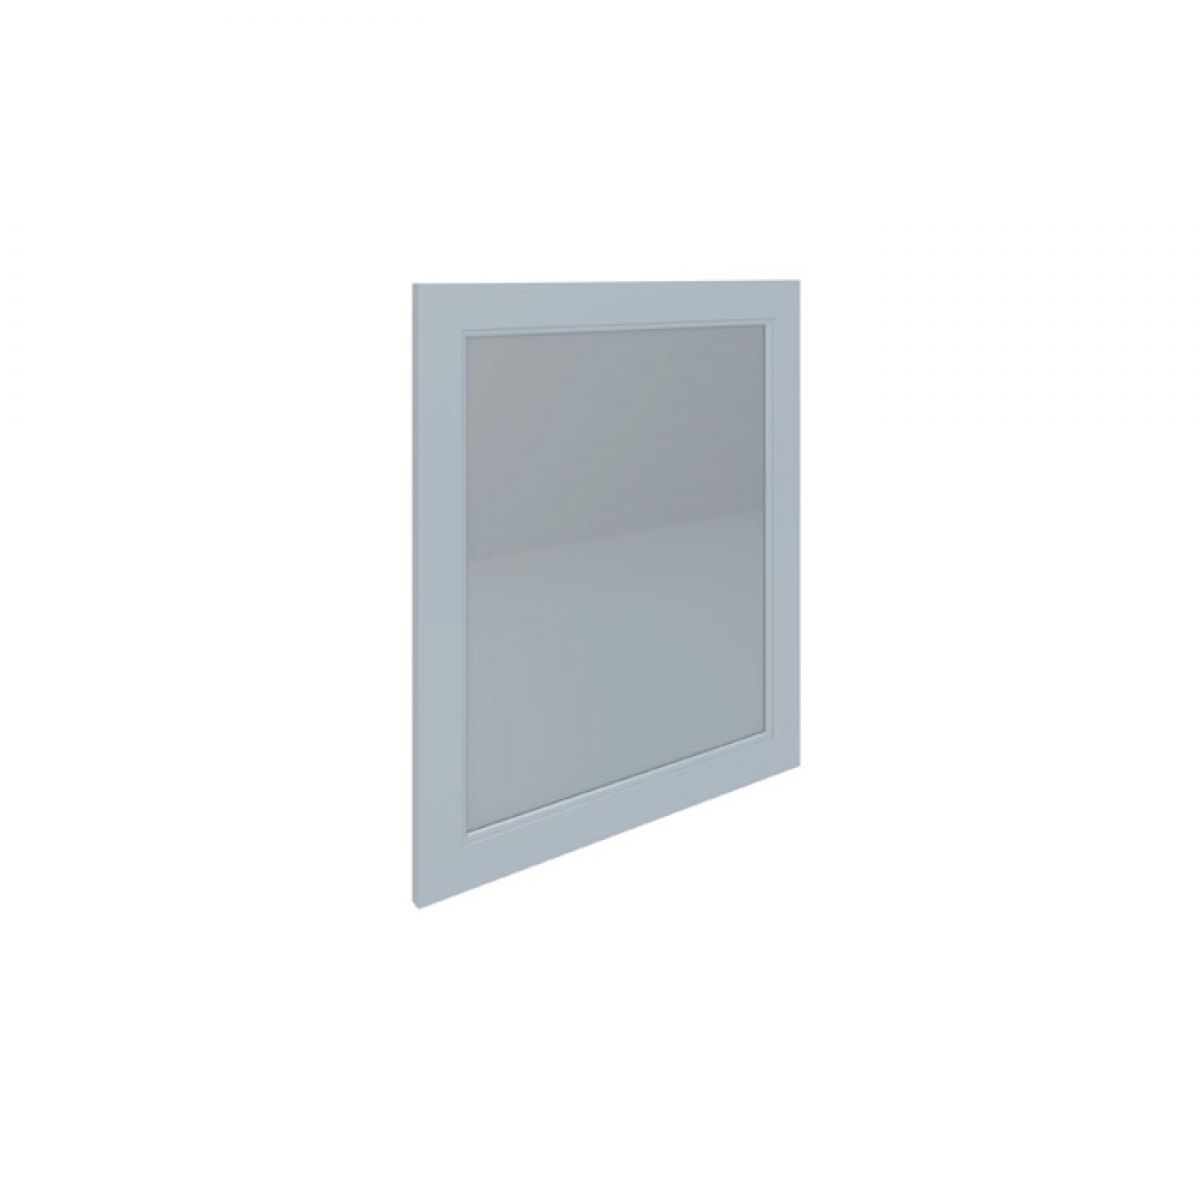 RAK Washington White Bathroom Mirror 650mm